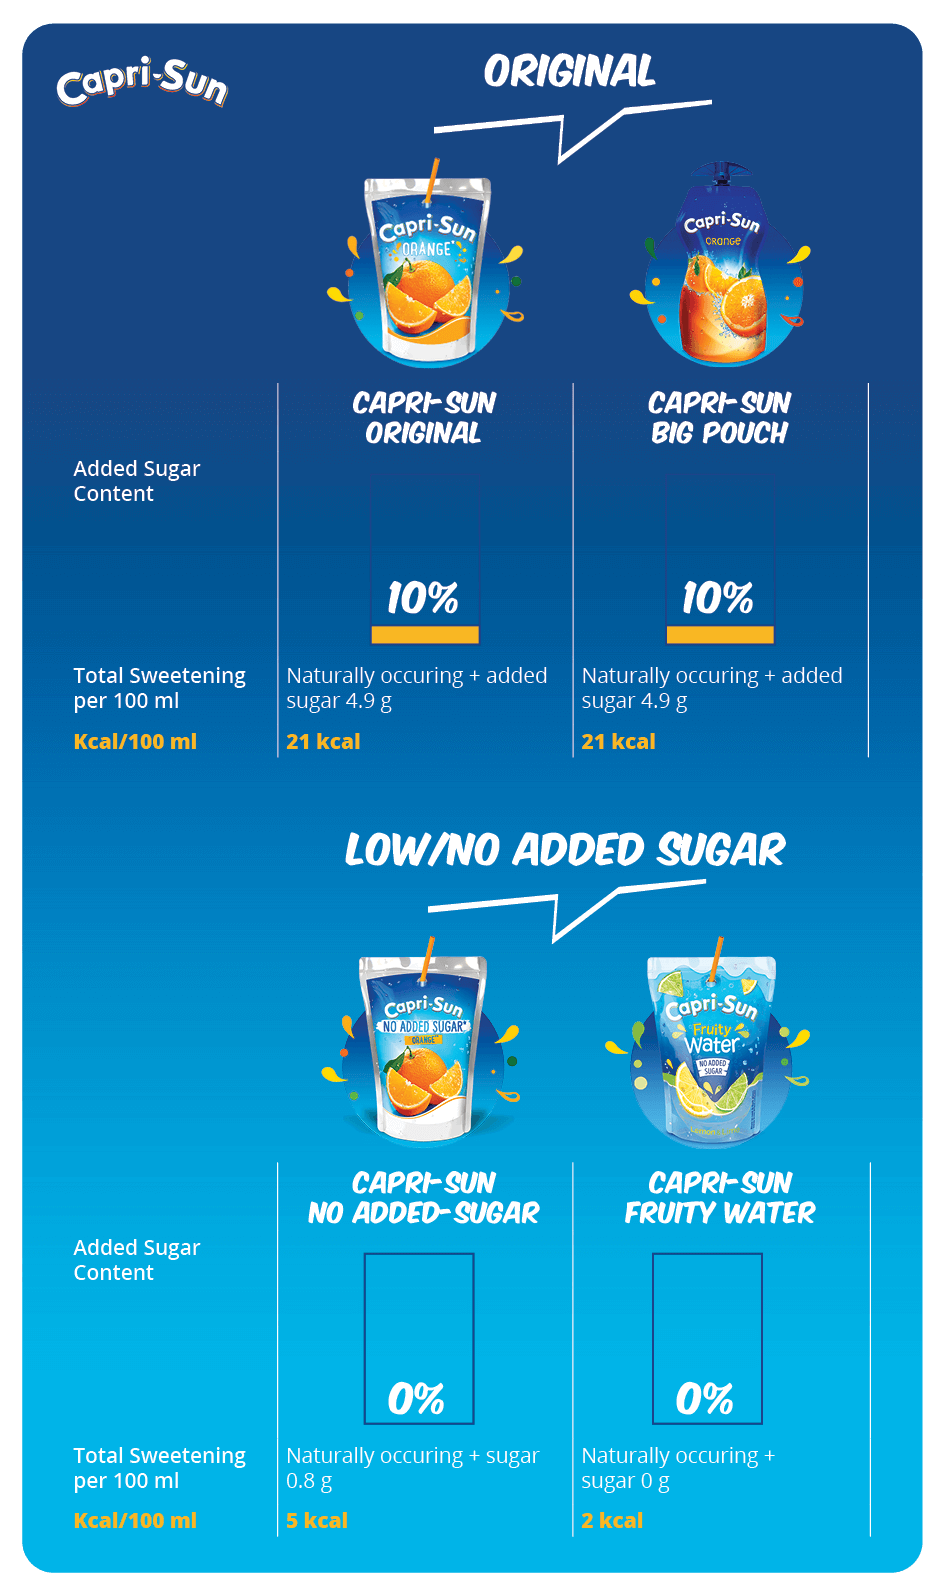 Sugar content in product range of Capri-Sun in Great Britain.